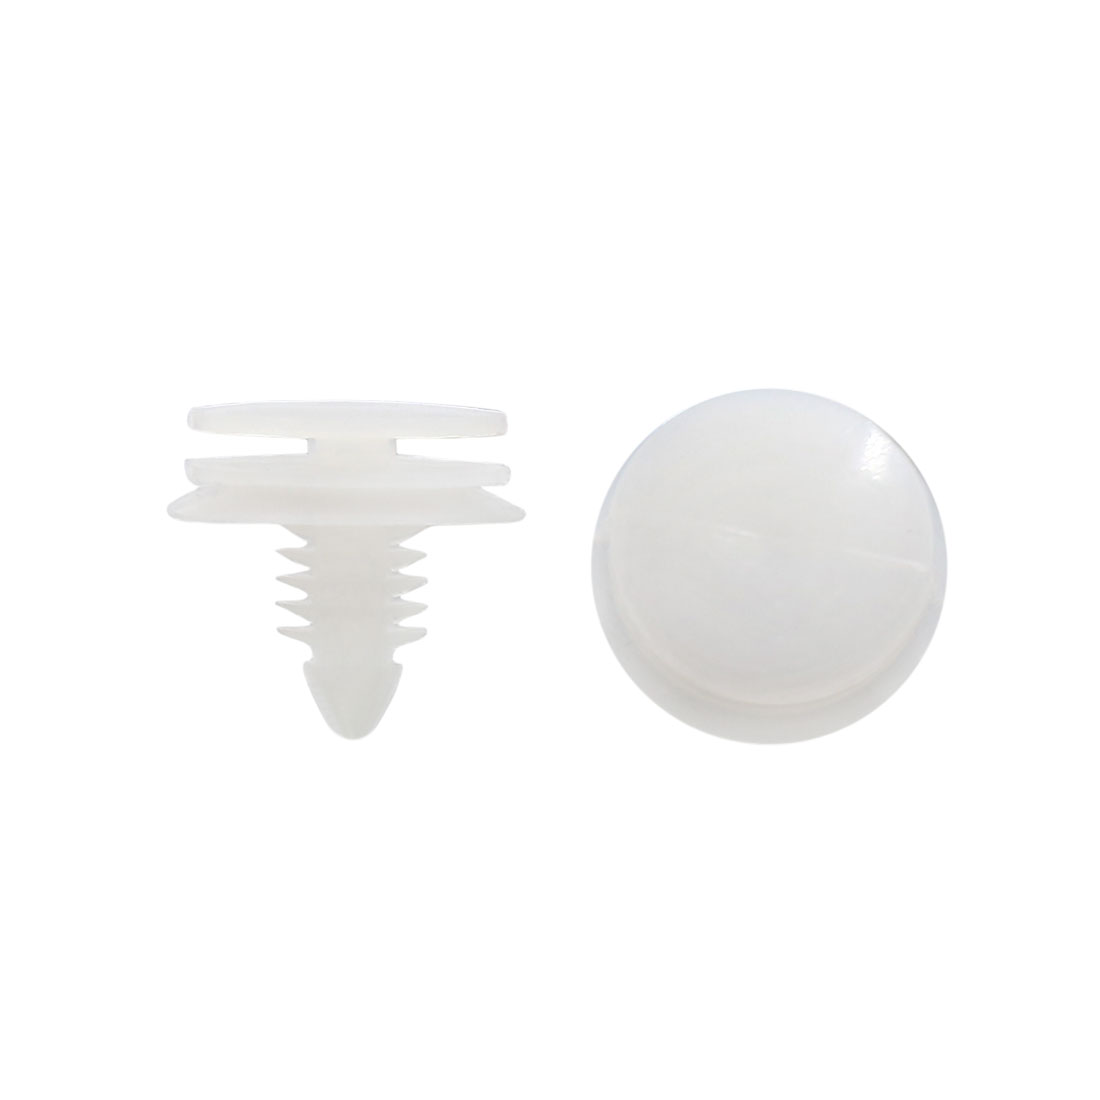 30Pcs White Plastic Rivets Fender Bumper Push Type Fastener Clip 7 x 8mm for Car